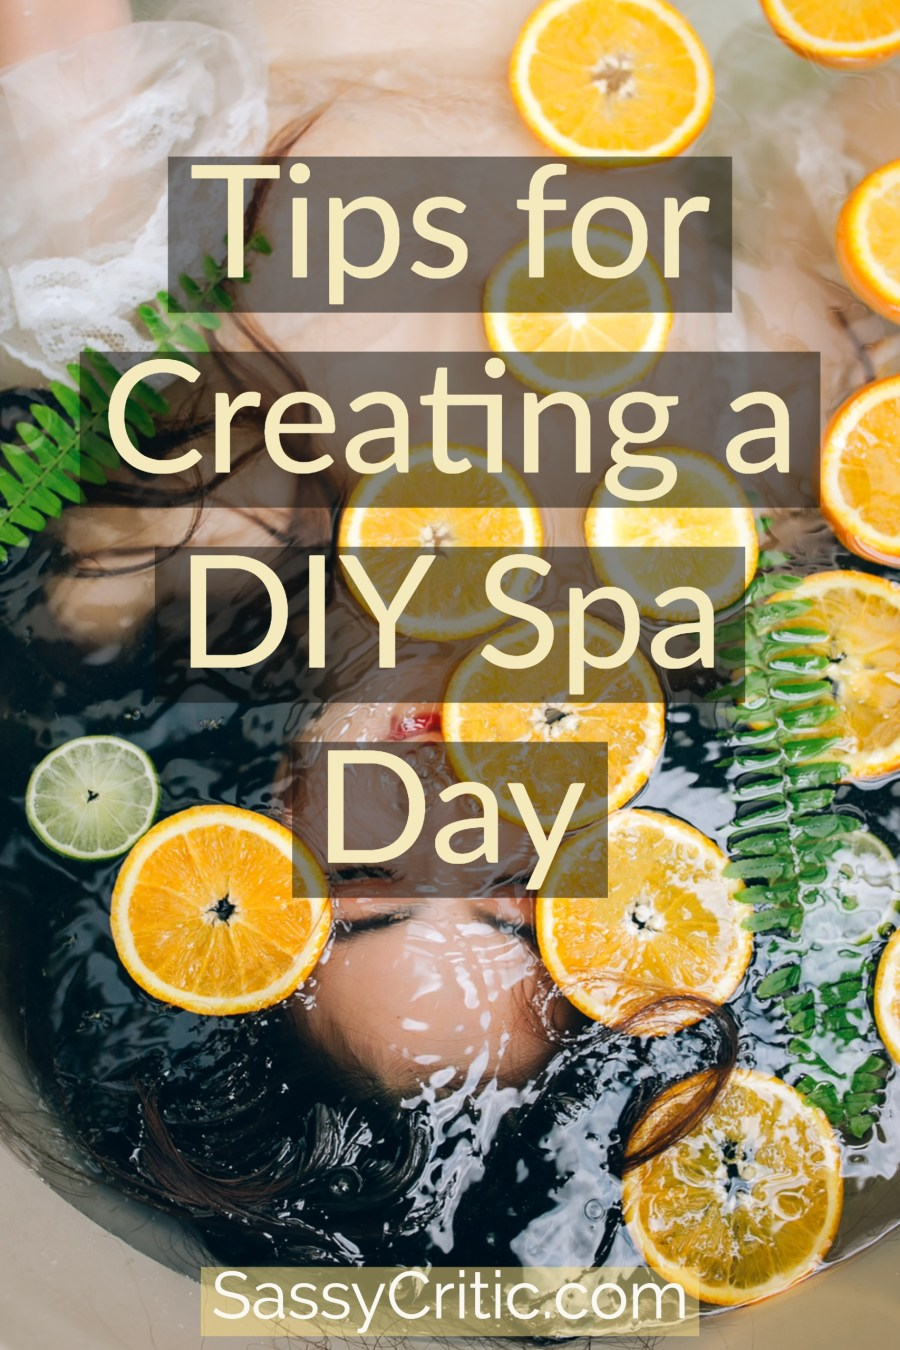 Create A DIY Spa Day With These Amazing Tips - SassyCritic.com